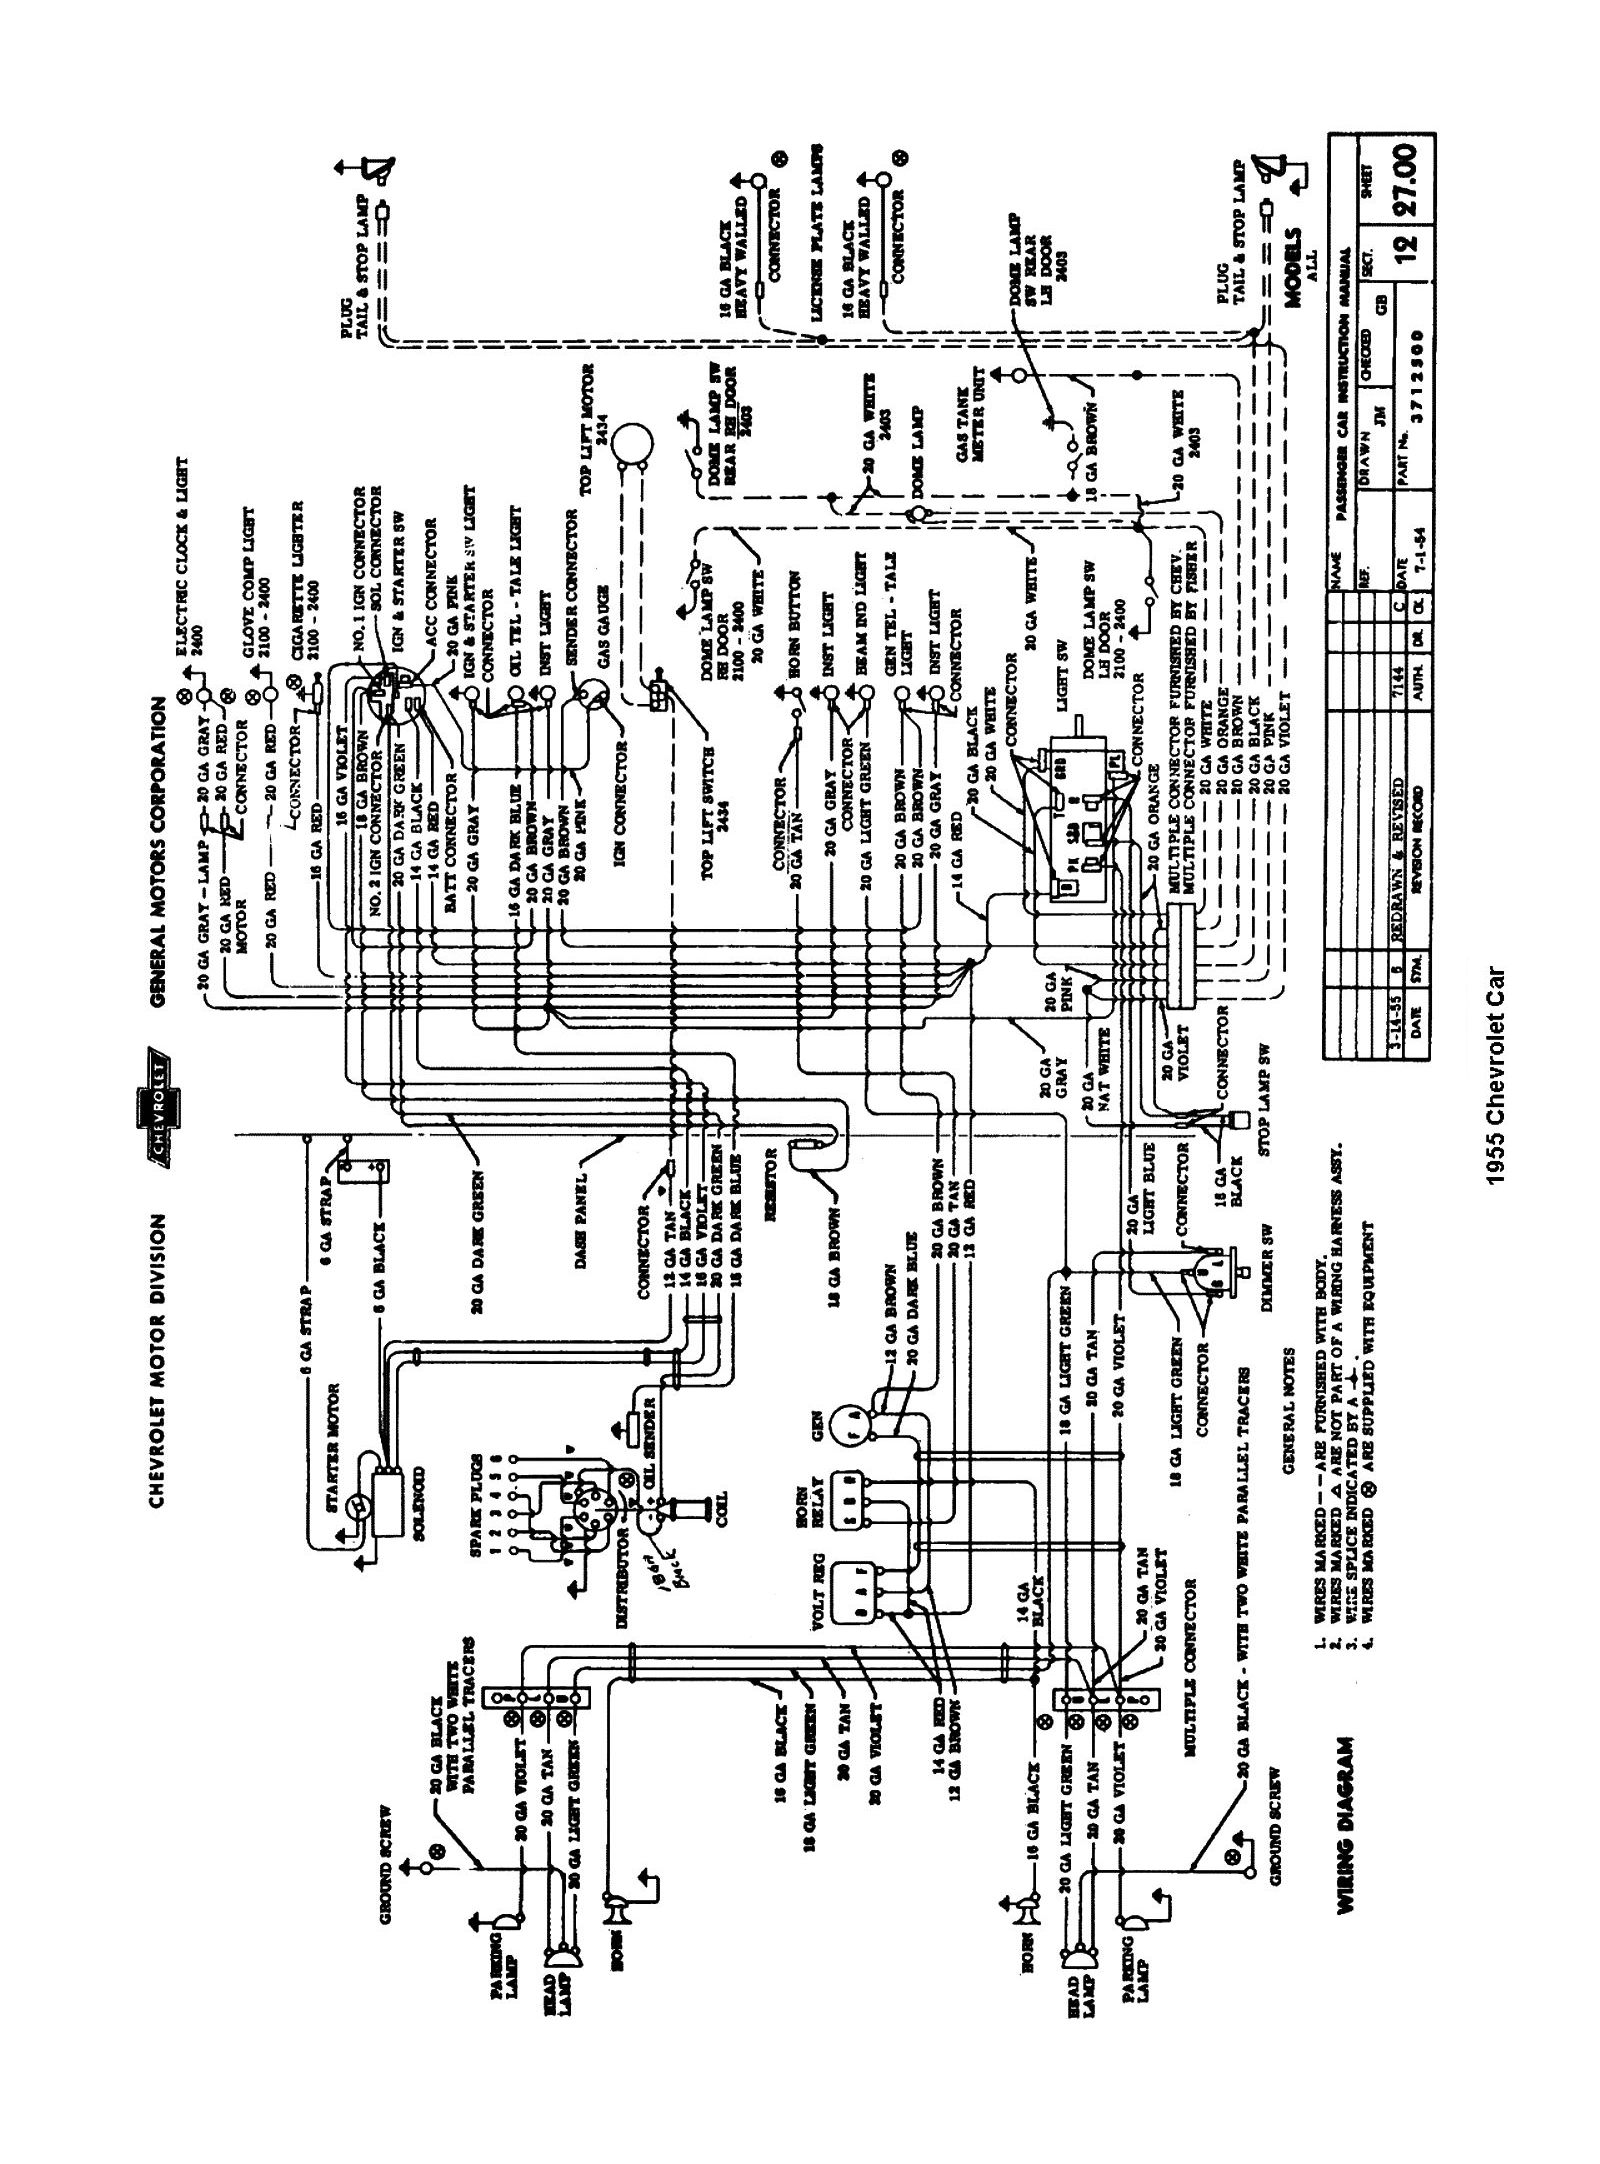 Wiring Diagram For 1955 Chevy Bel Air